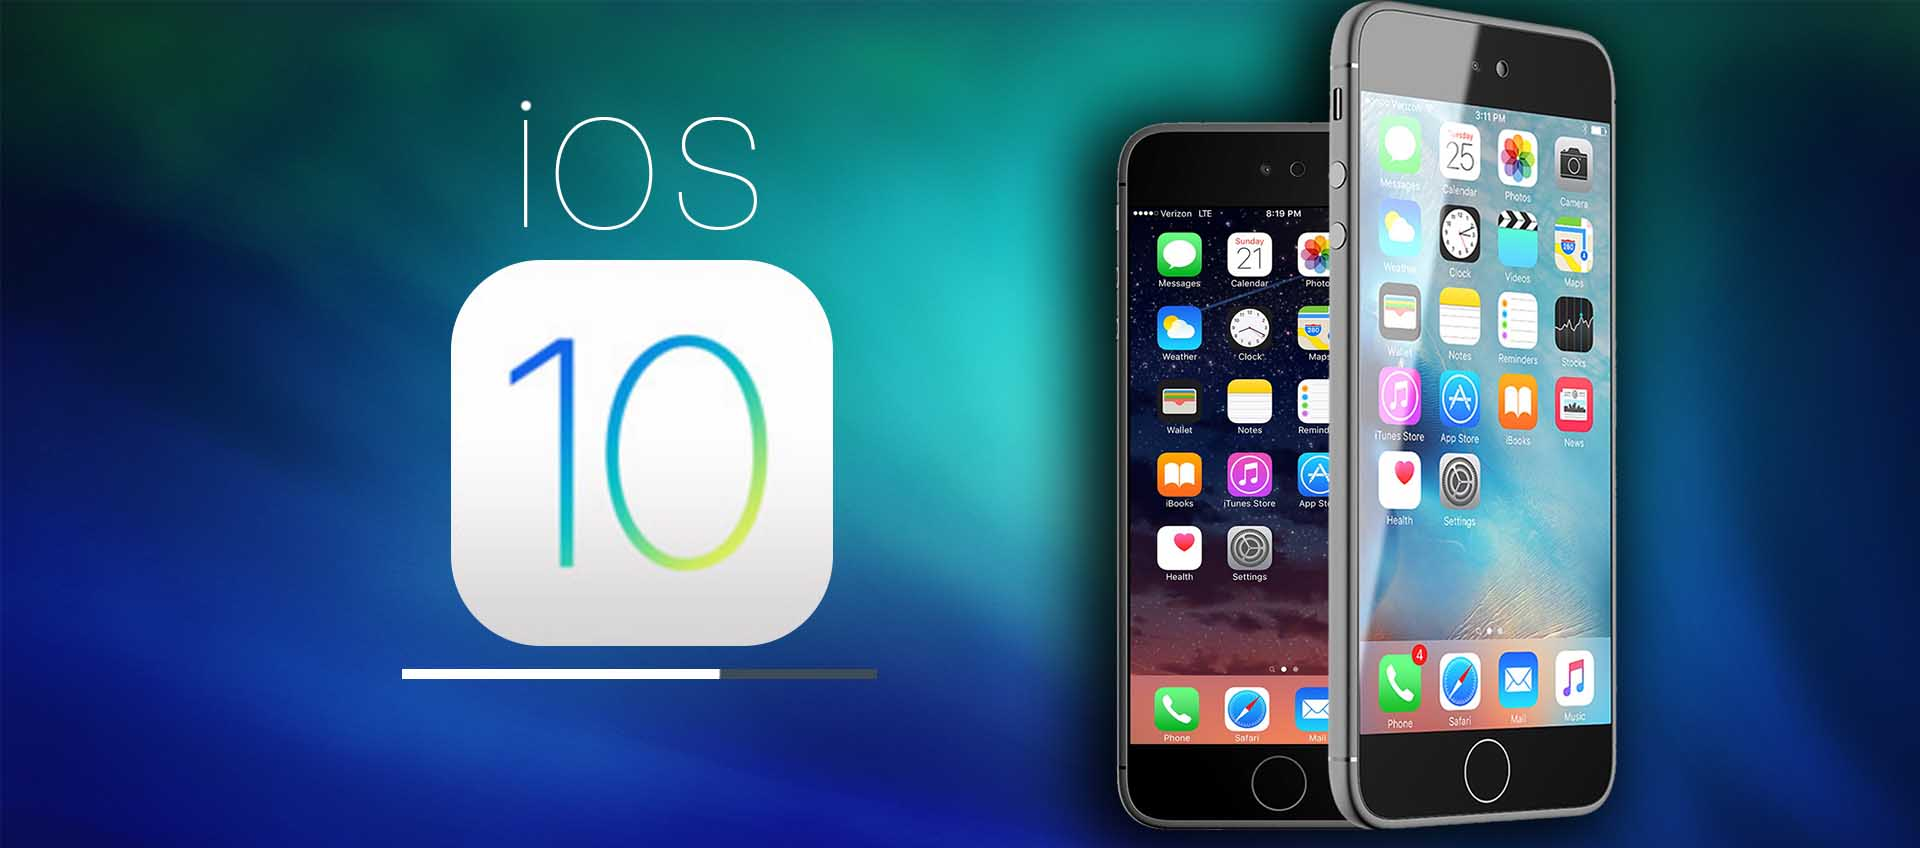 How to Install iOS 10 on your iPhone/iPad?